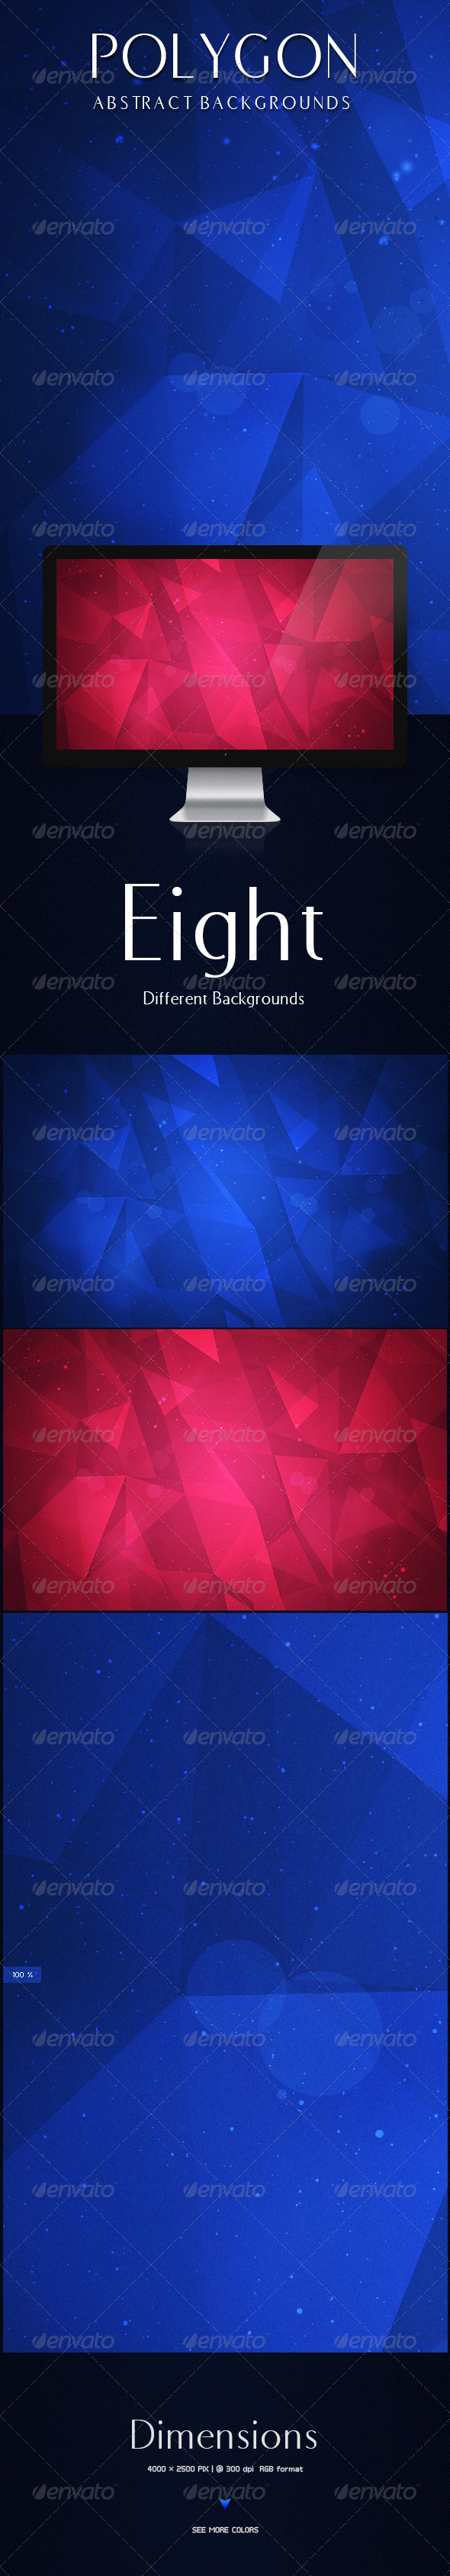 GraphicRiver Polygon Abstract Backgrounds 8370963